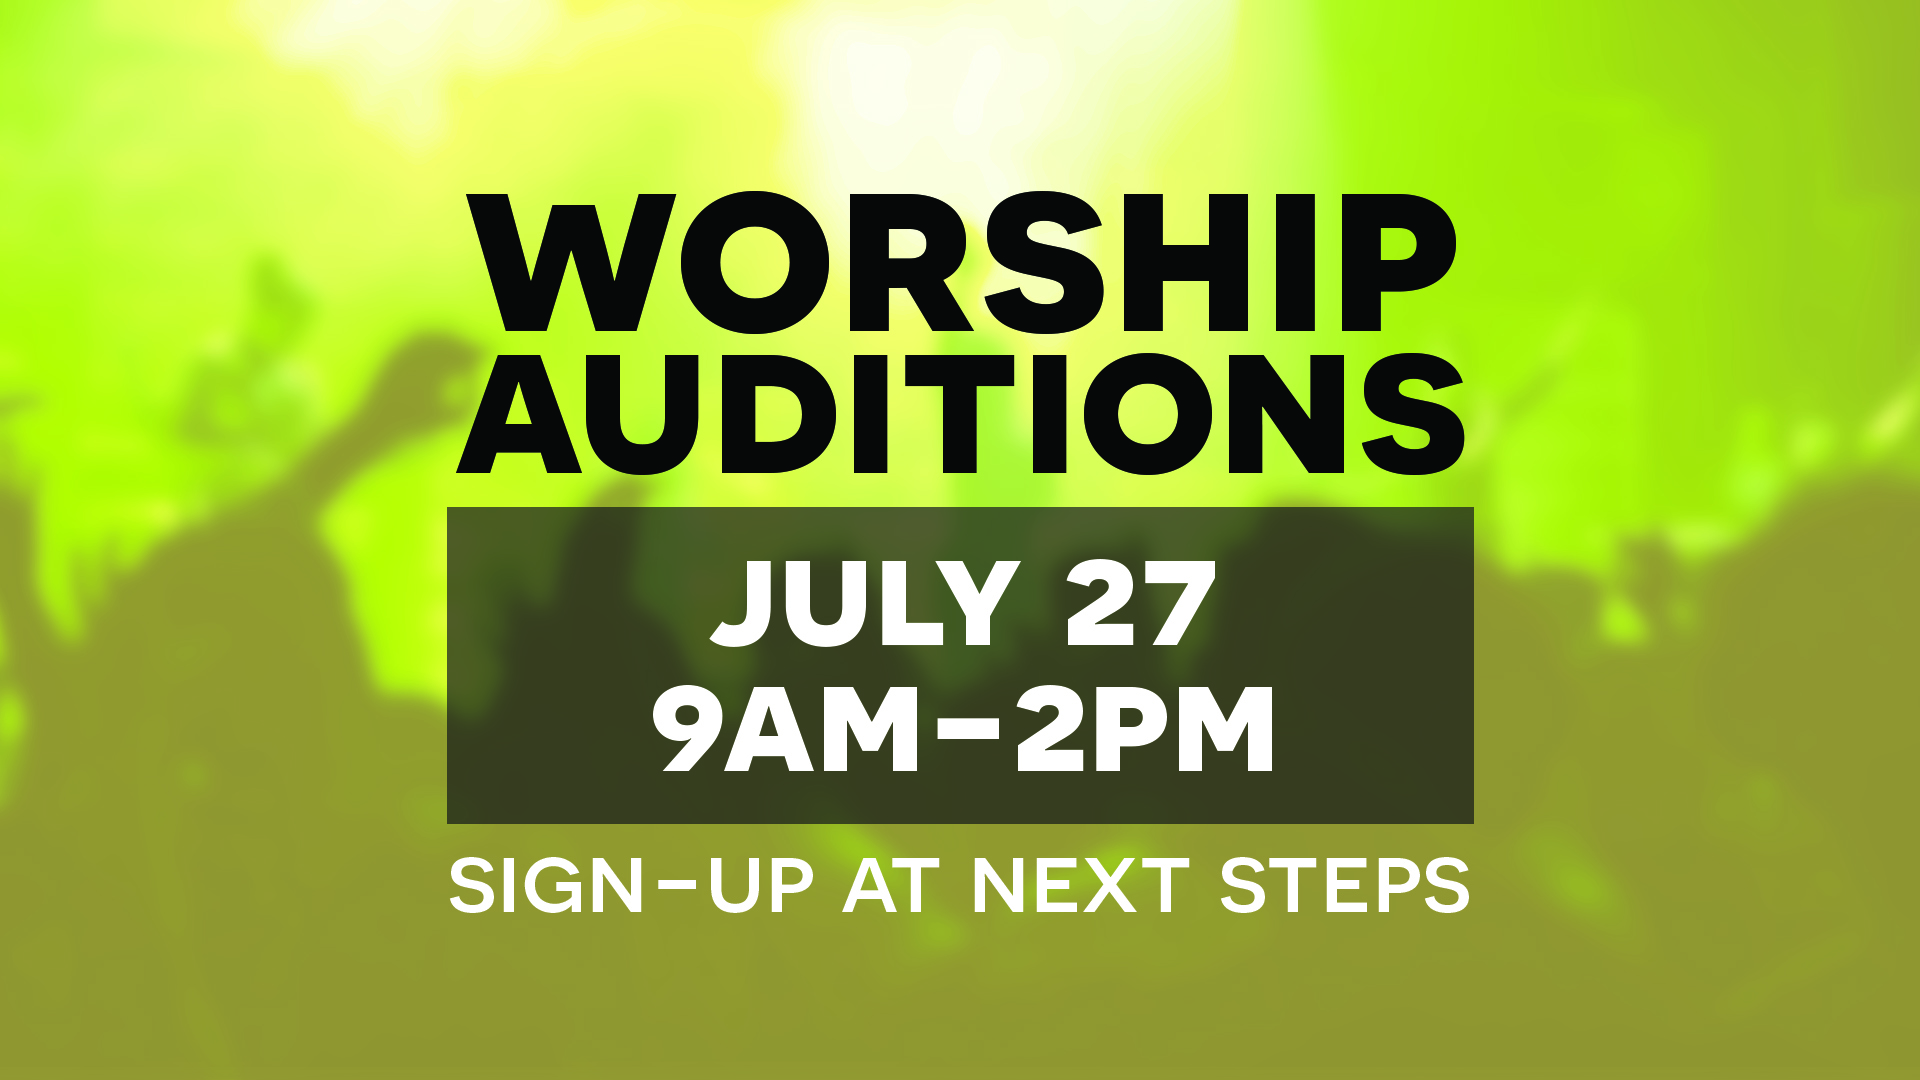 worship auditions july2019.jpg